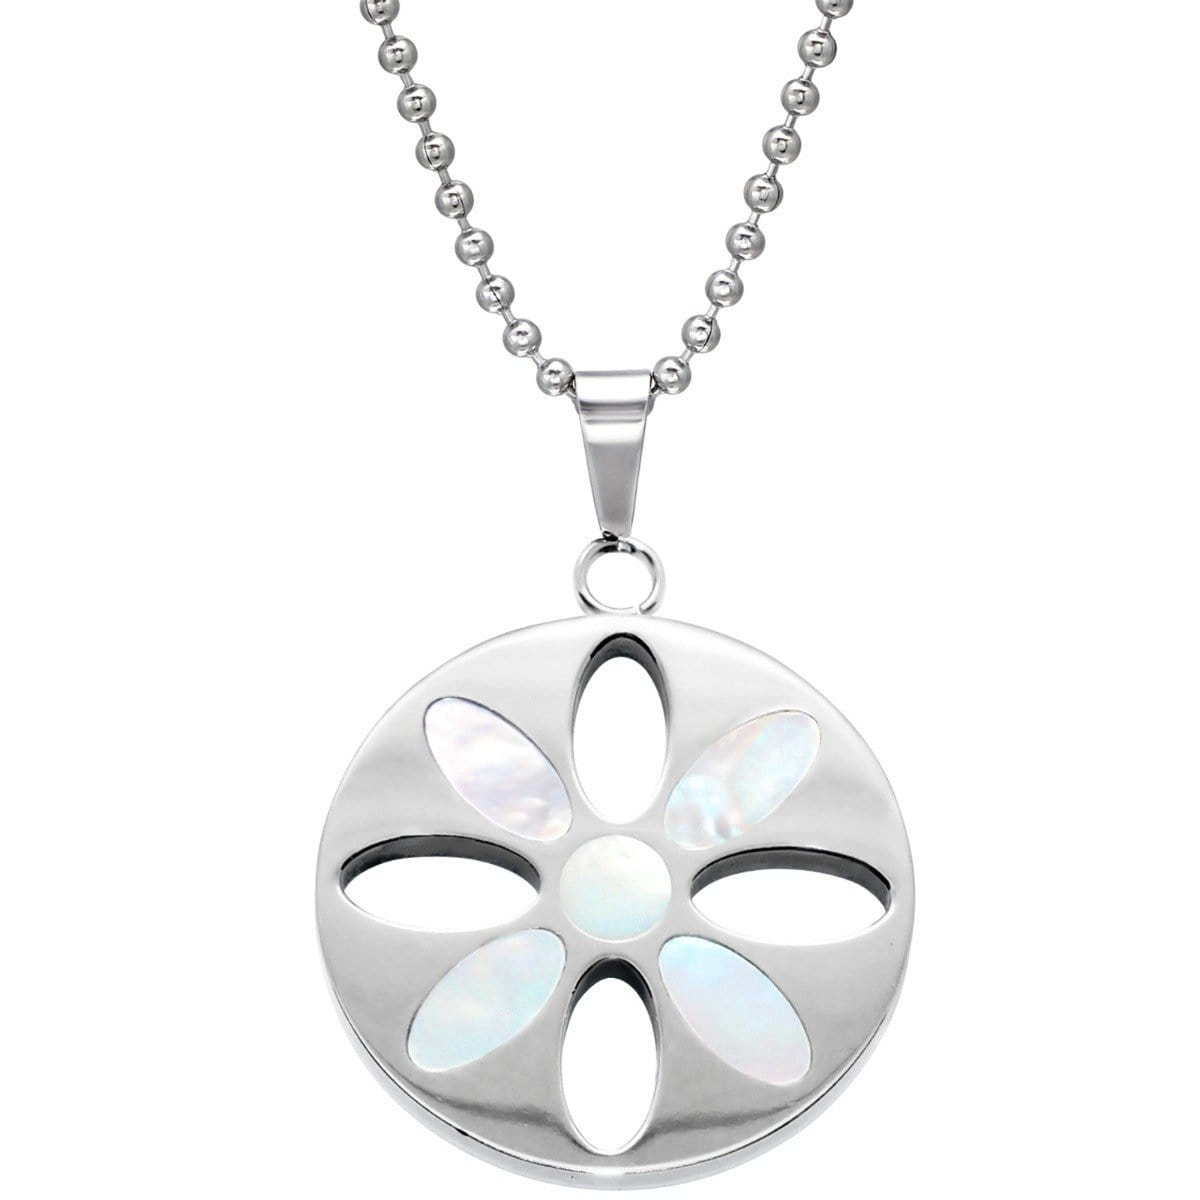 Stainless Steel Flower  Pendant Necklace with Shell